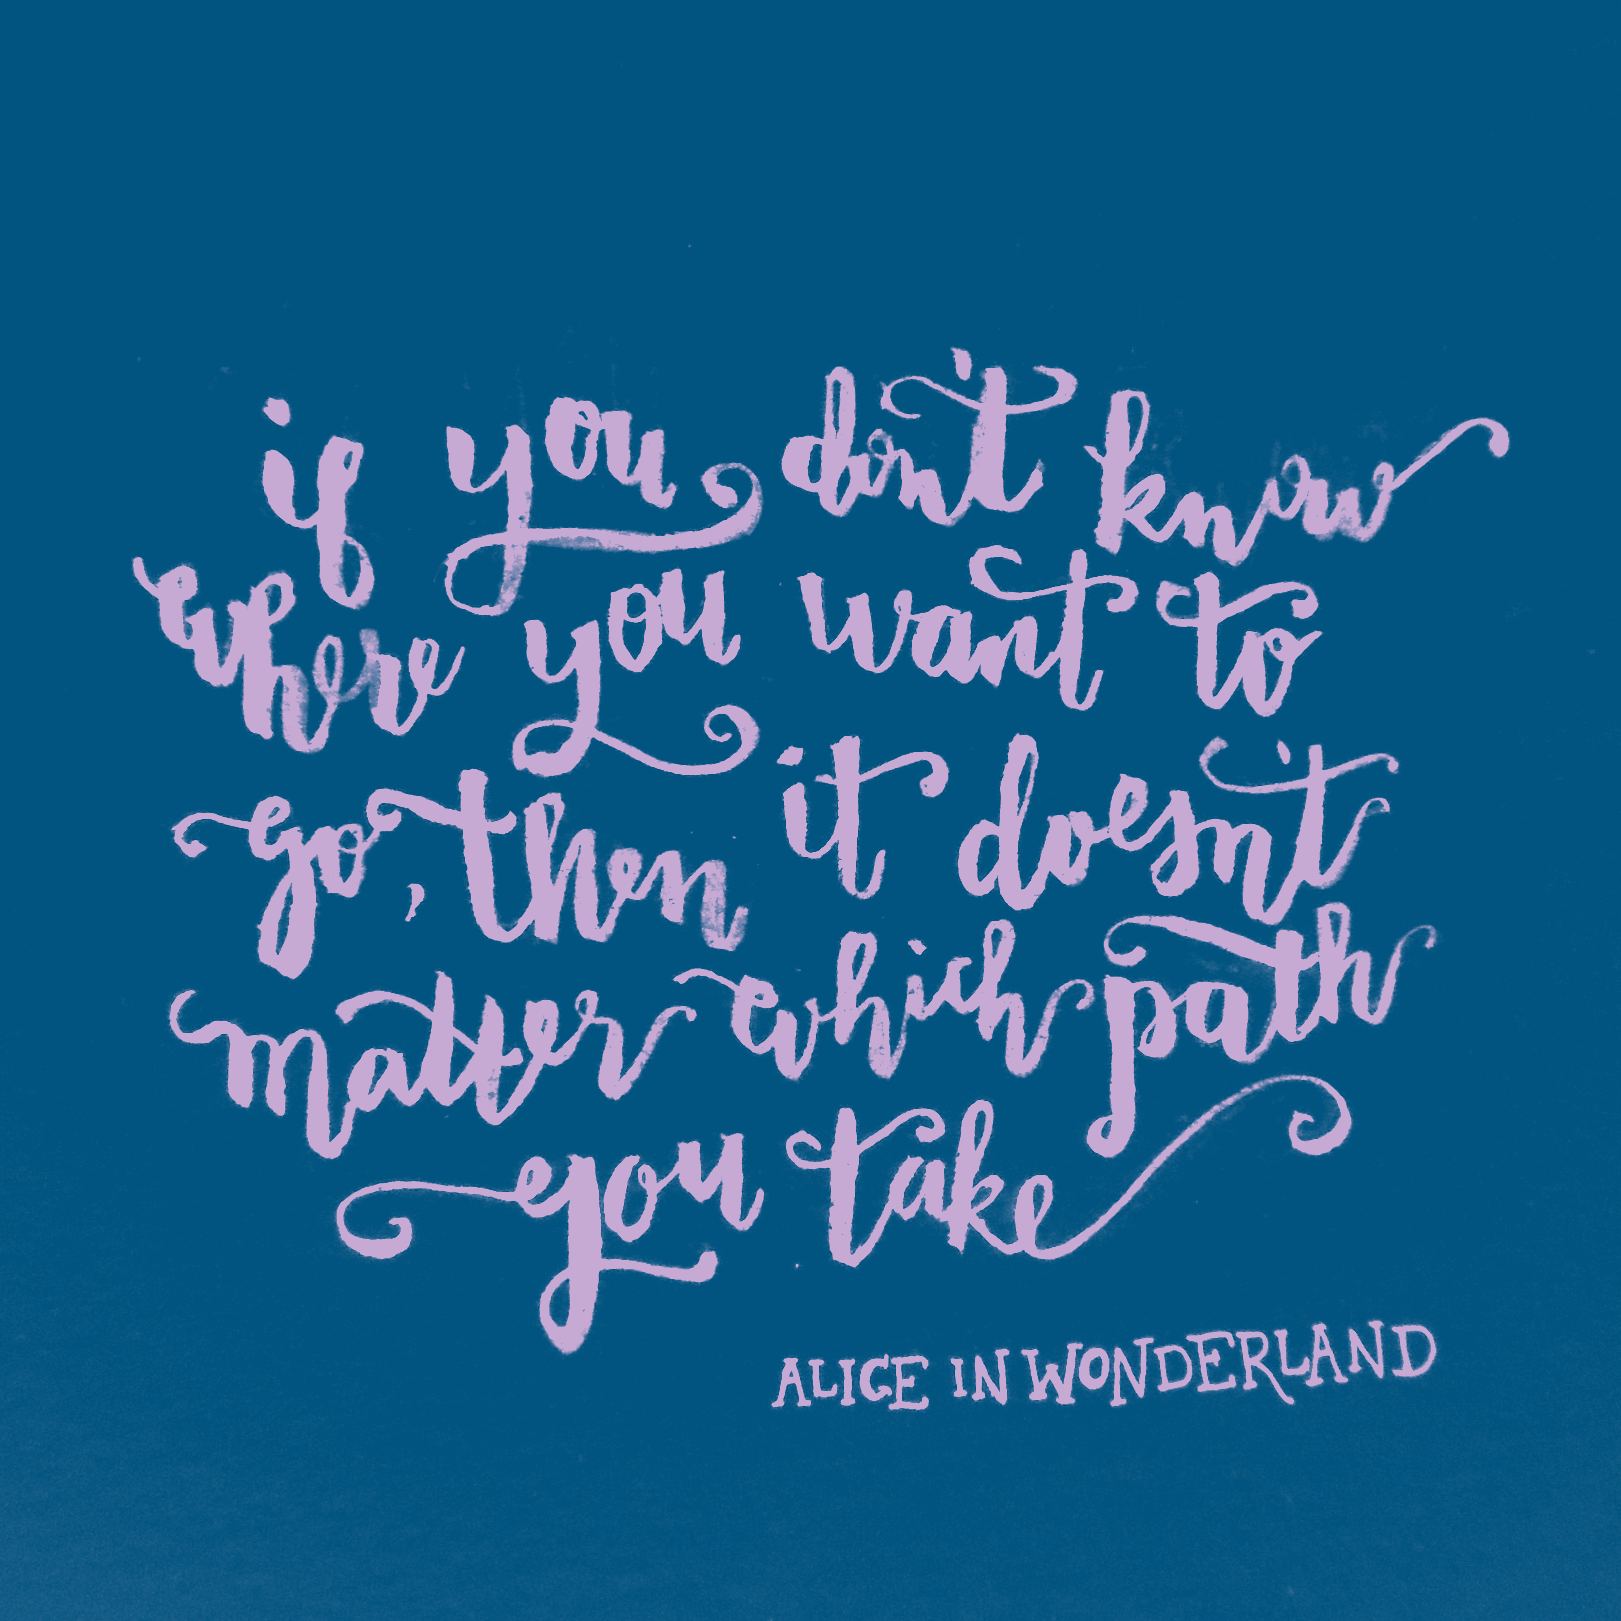 Disney Alice In Wonderland Quote: Chrystalizabeth